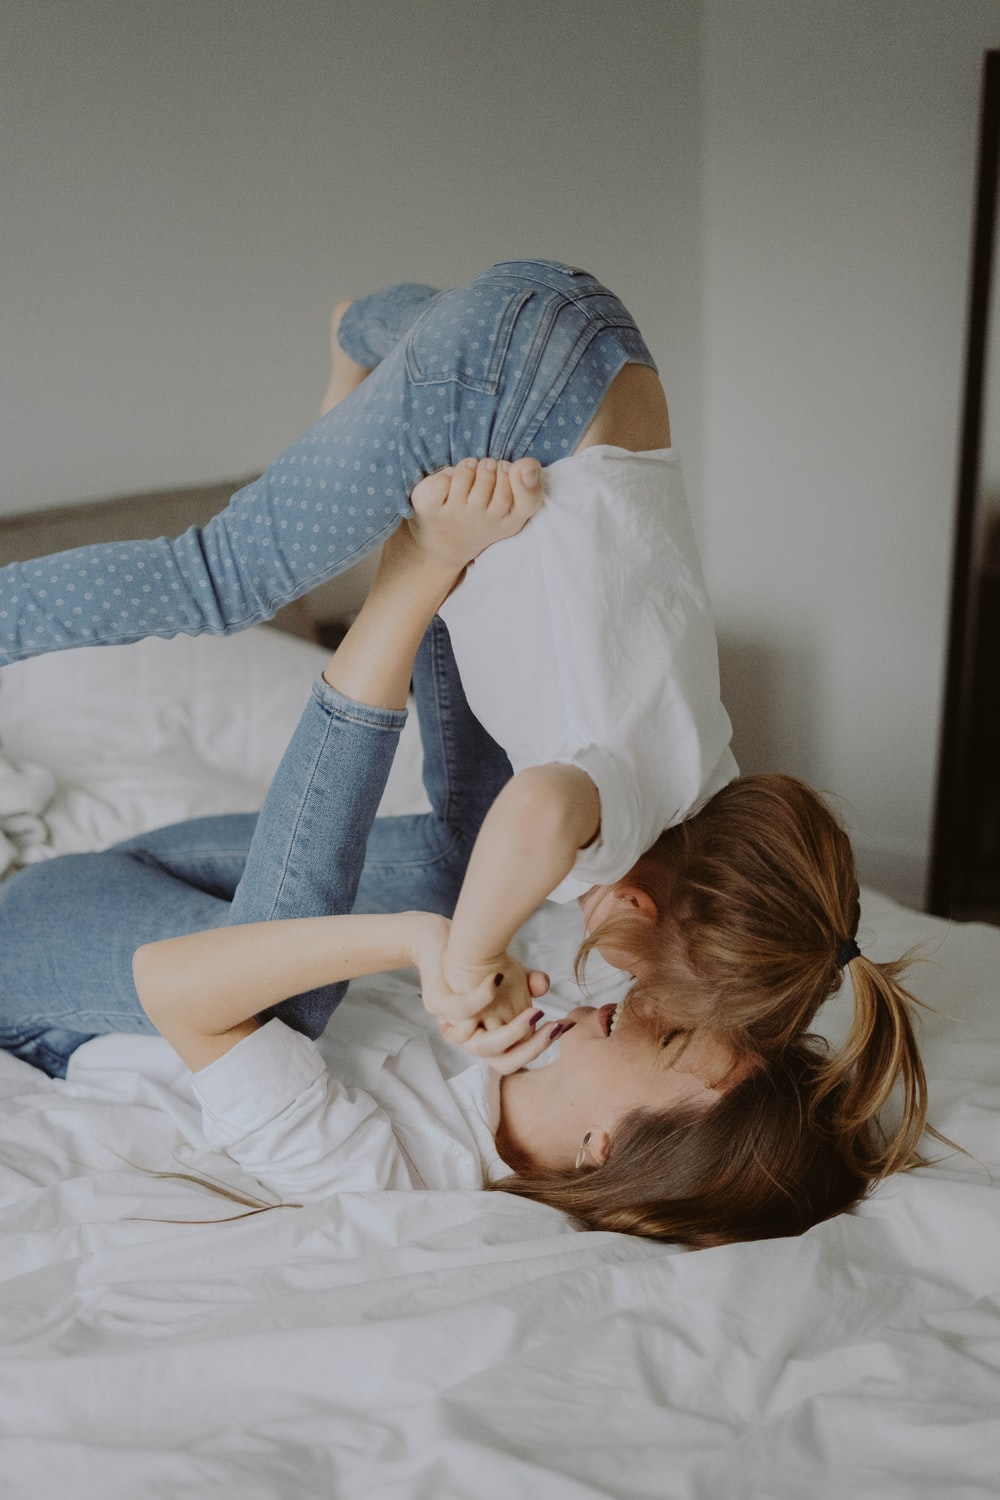 woman in blue and white polka dot shirt lying on bed